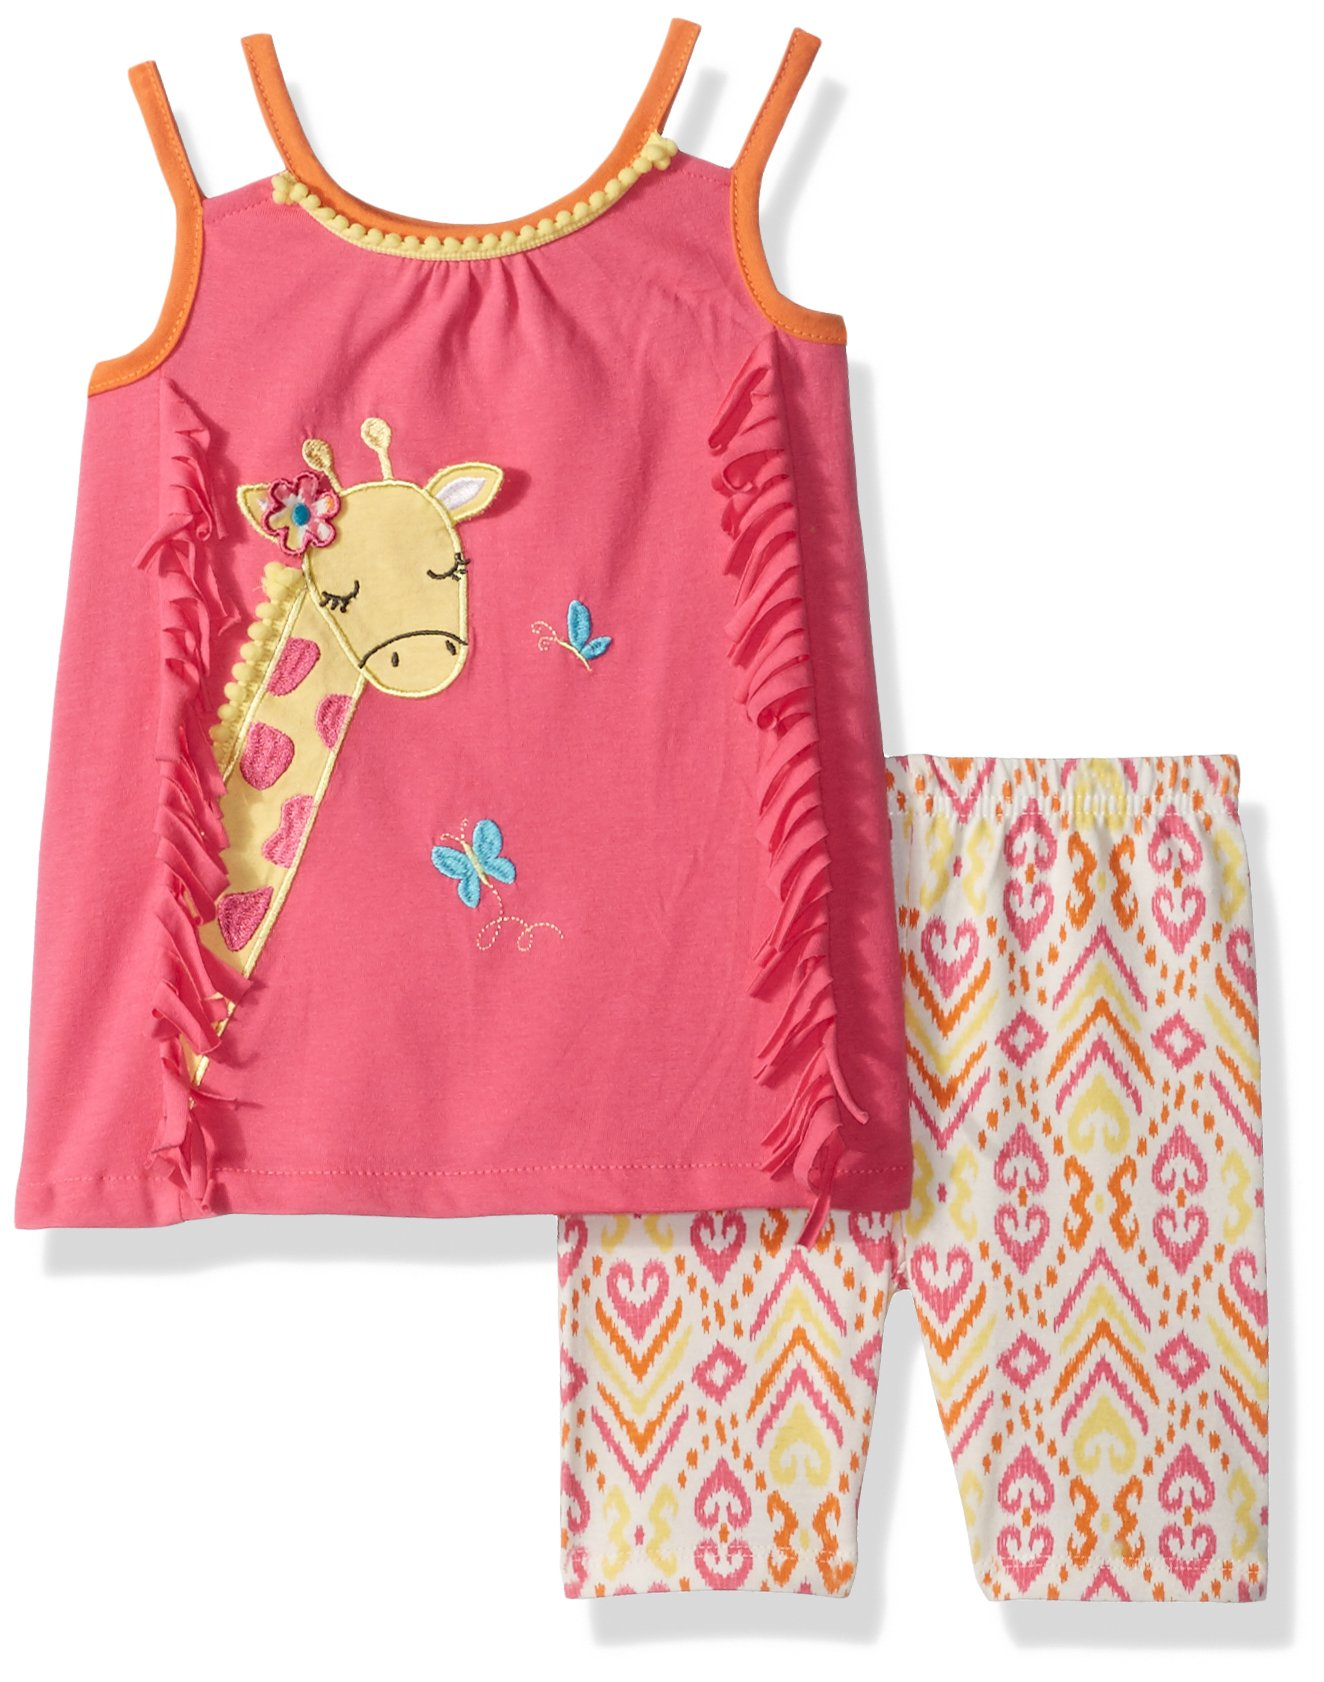 Nannette Toddler Girls' 2 Piece Playwear Bike Short Set, Pink, 4T by Nannette (Image #1)